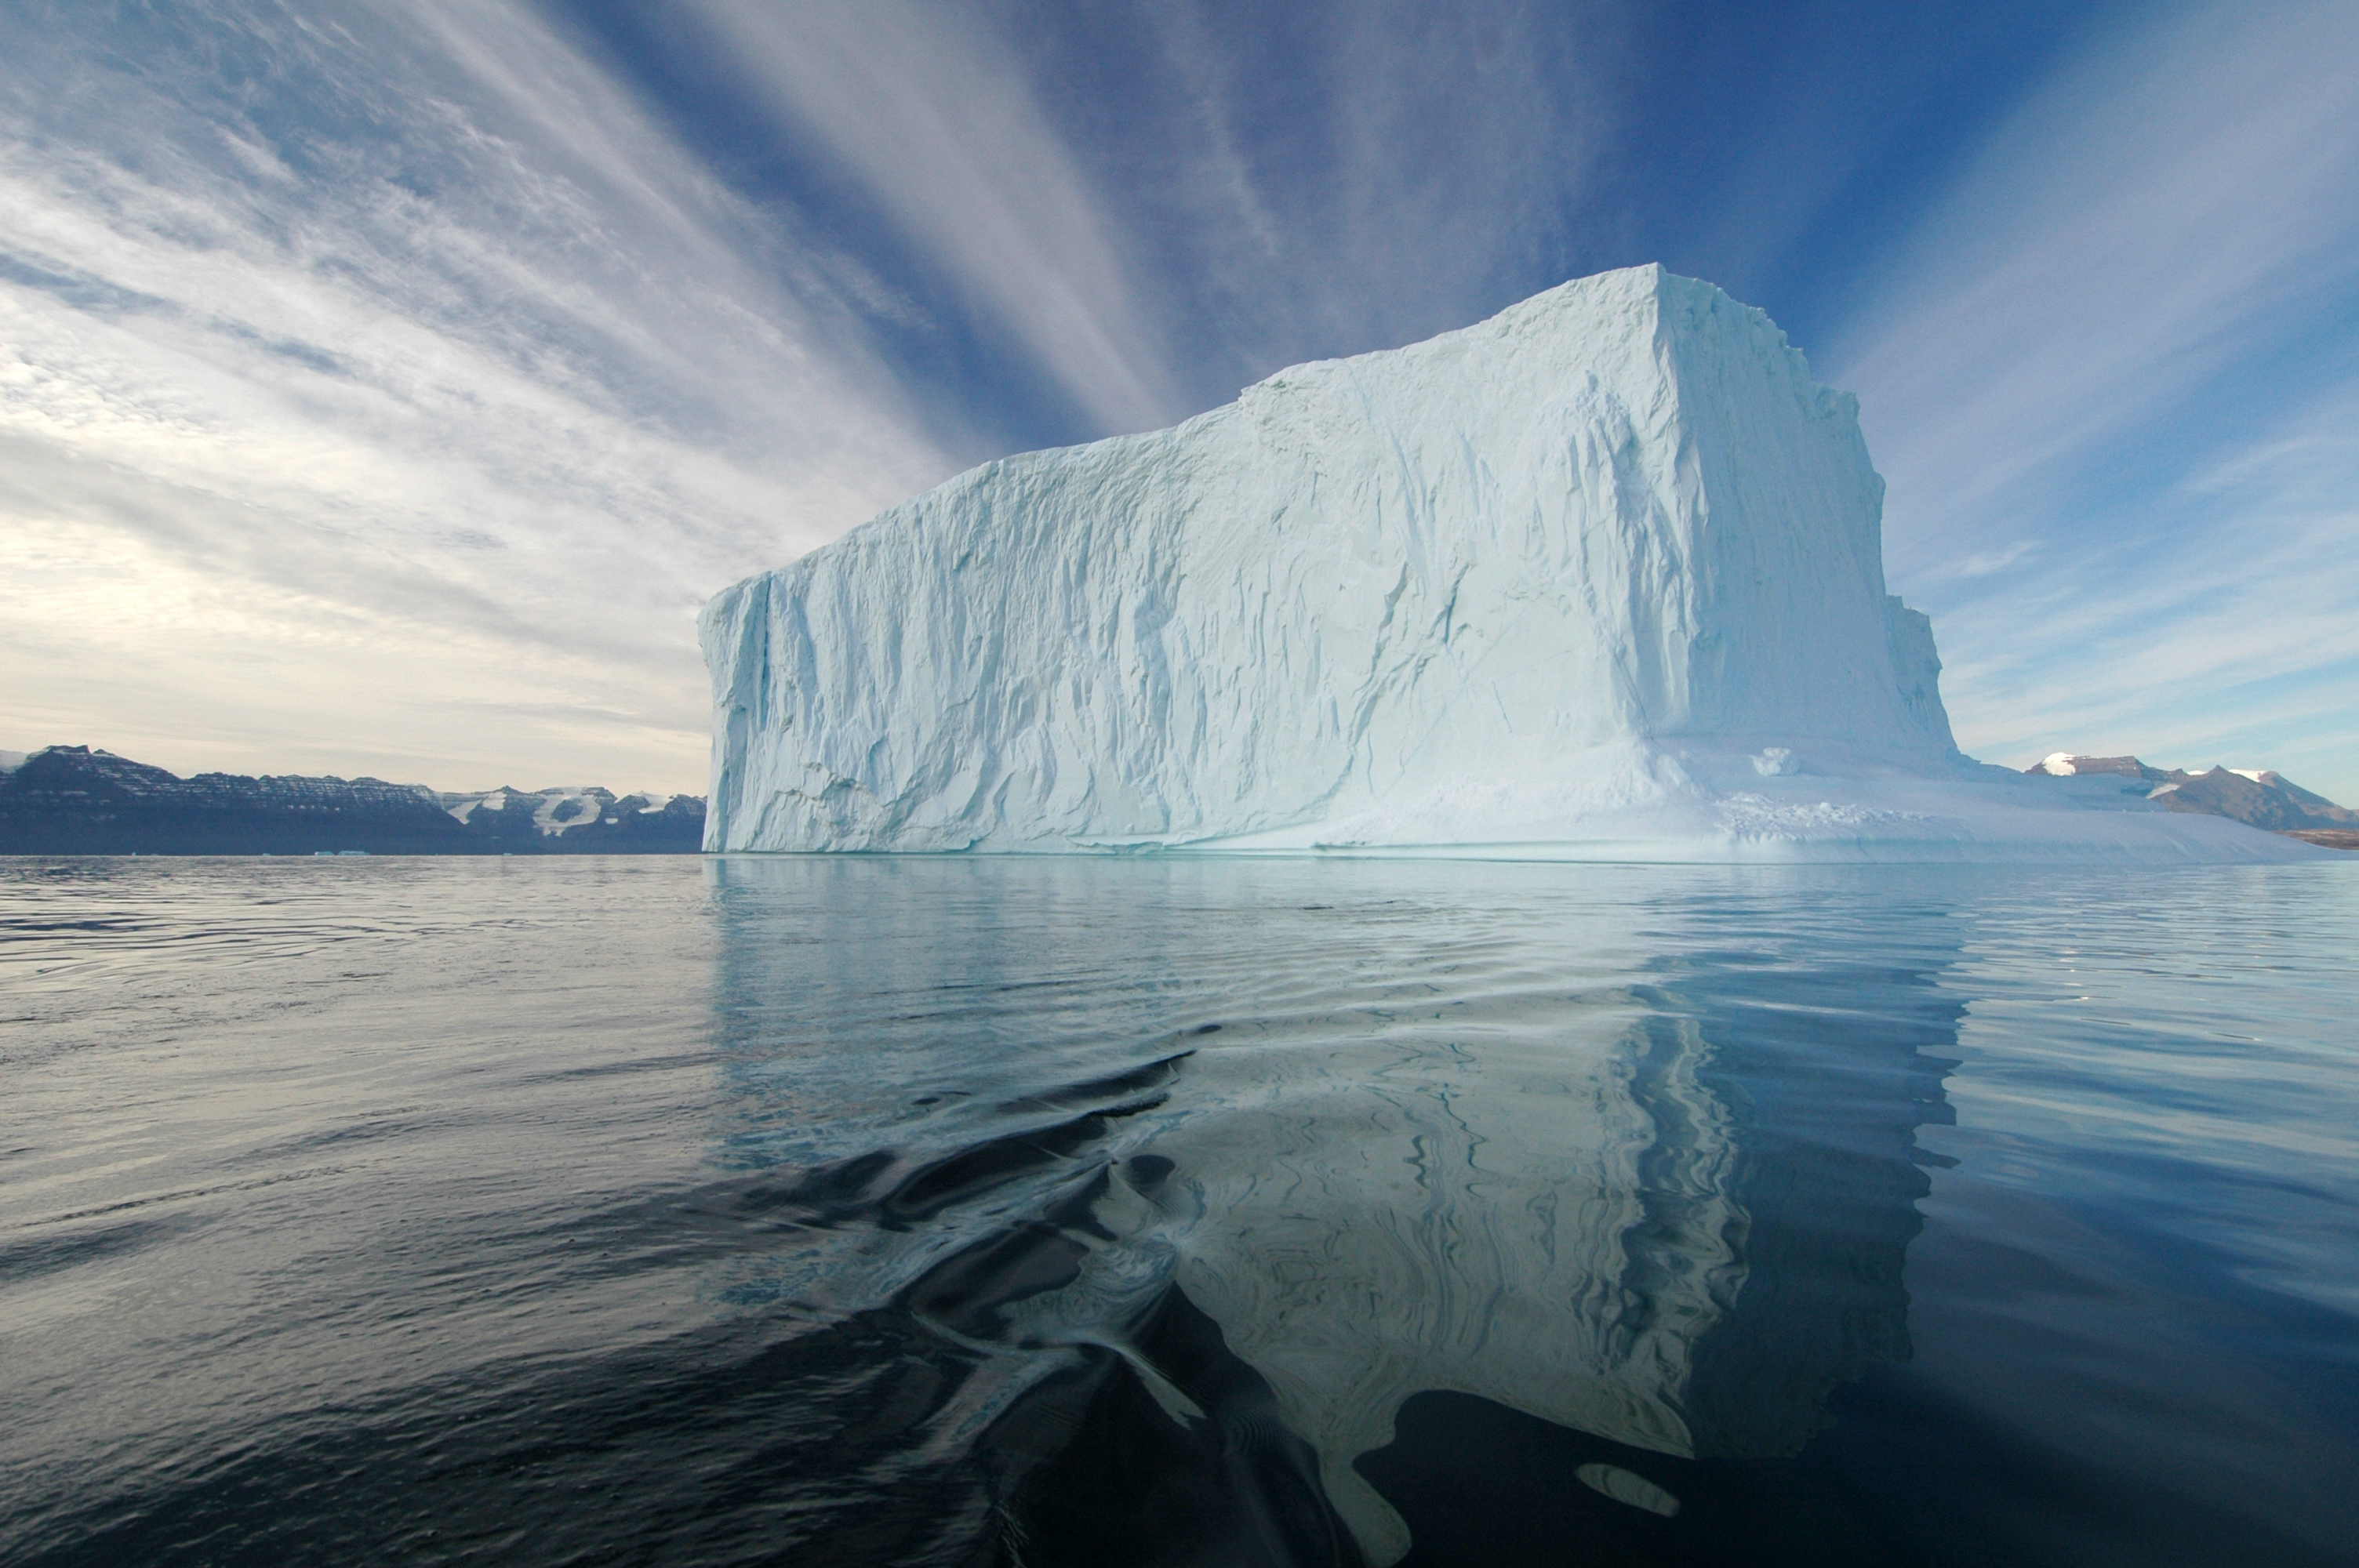 Iceberg in the Northeast Greenland National Park [3008×2000] photo by Rita Willaert